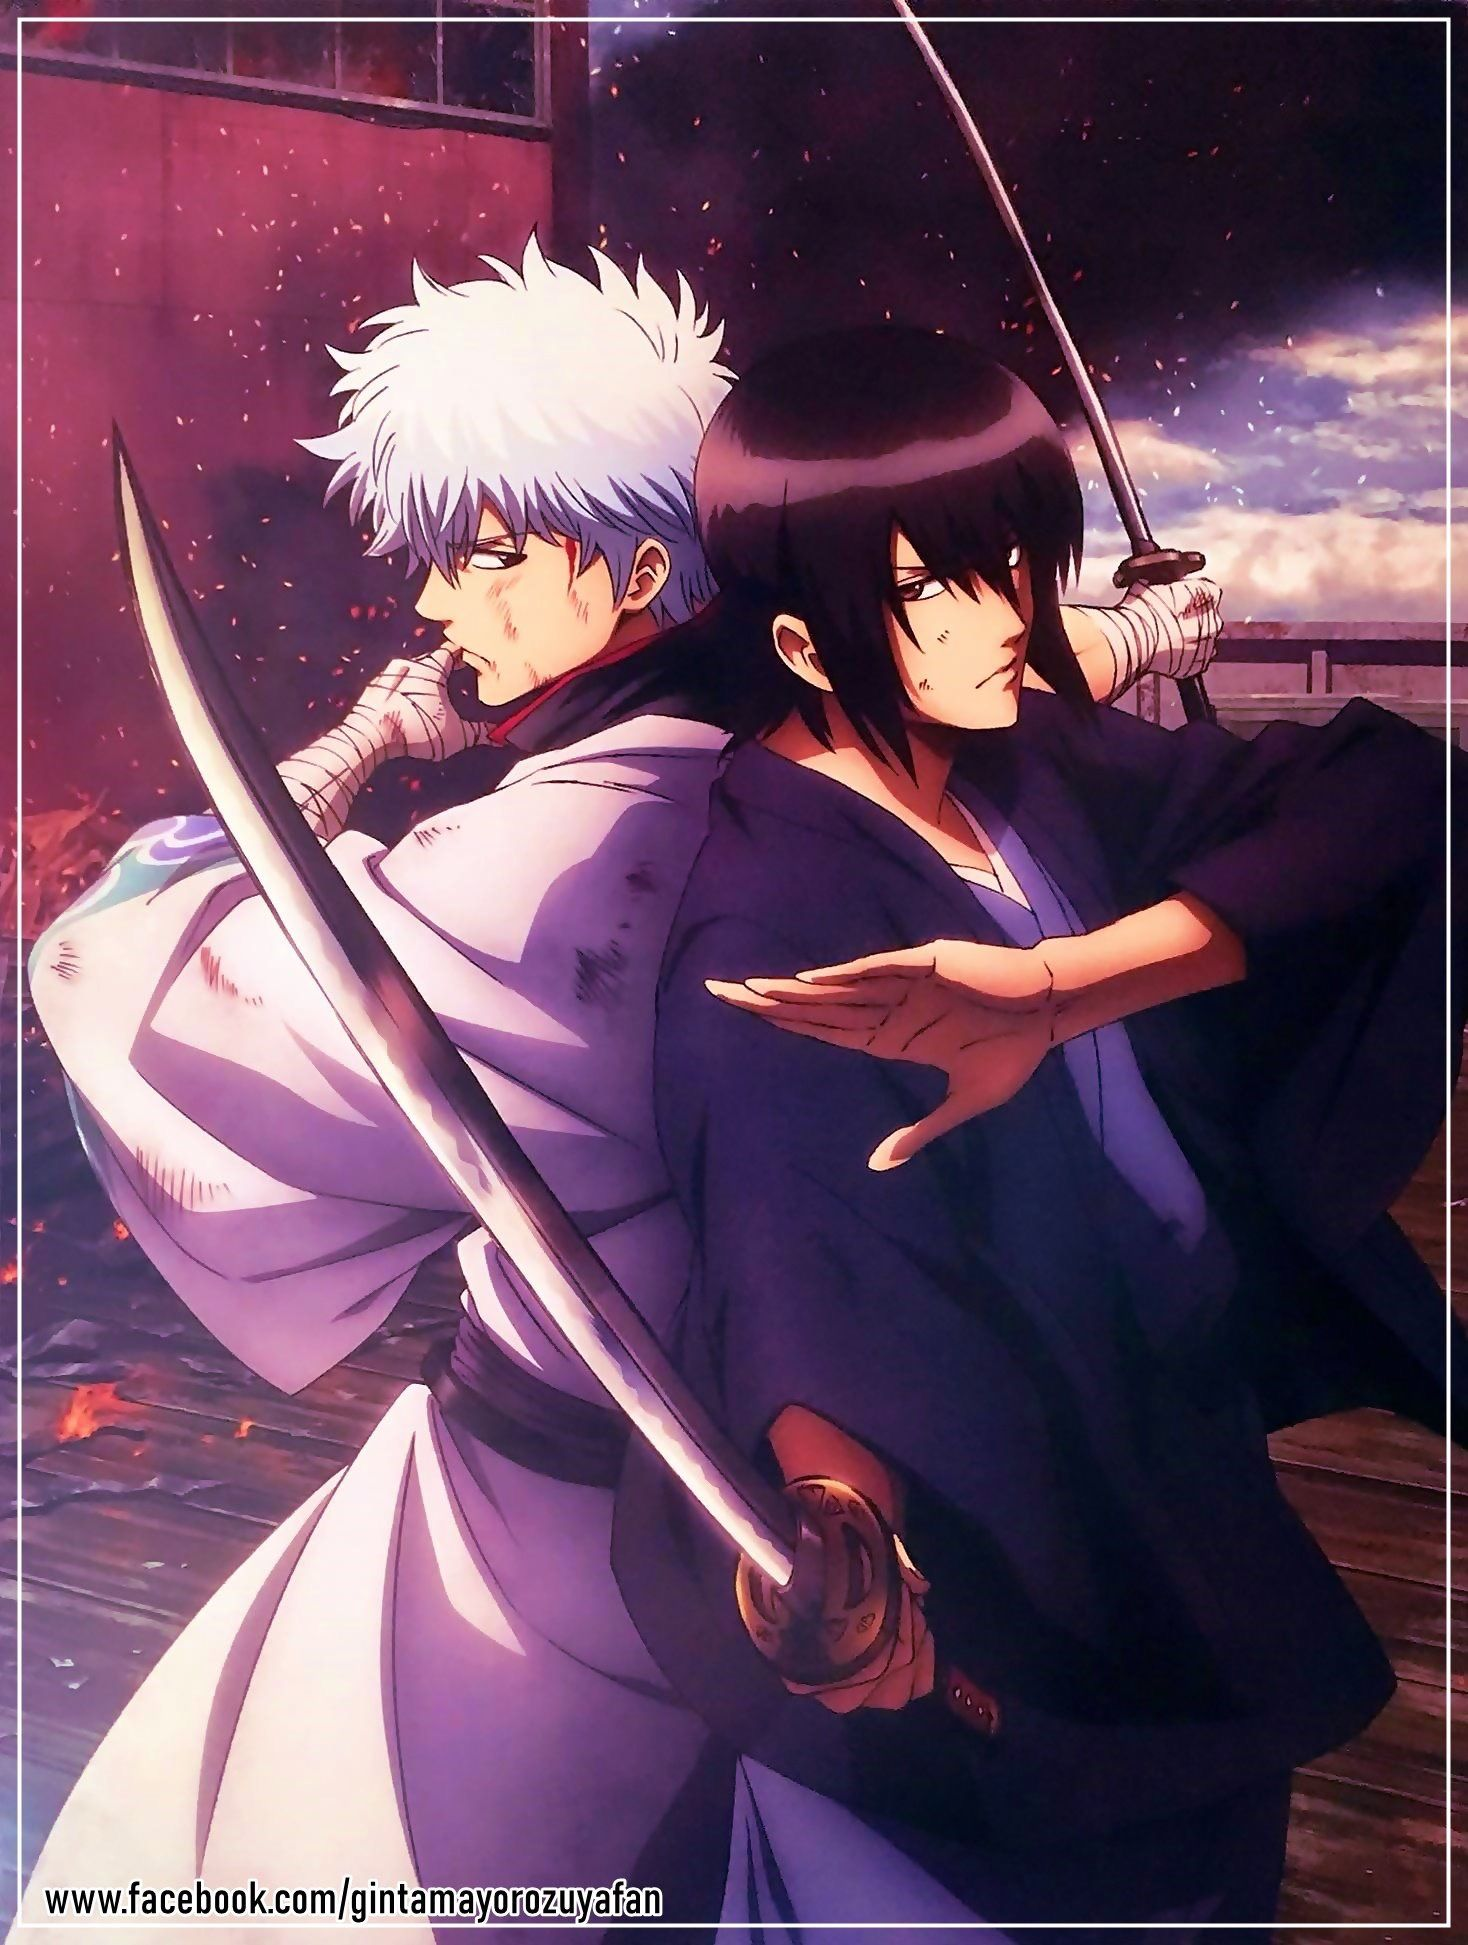 Pin by Karl AR on Gintama (銀魂) Gintama wallpaper, Anime